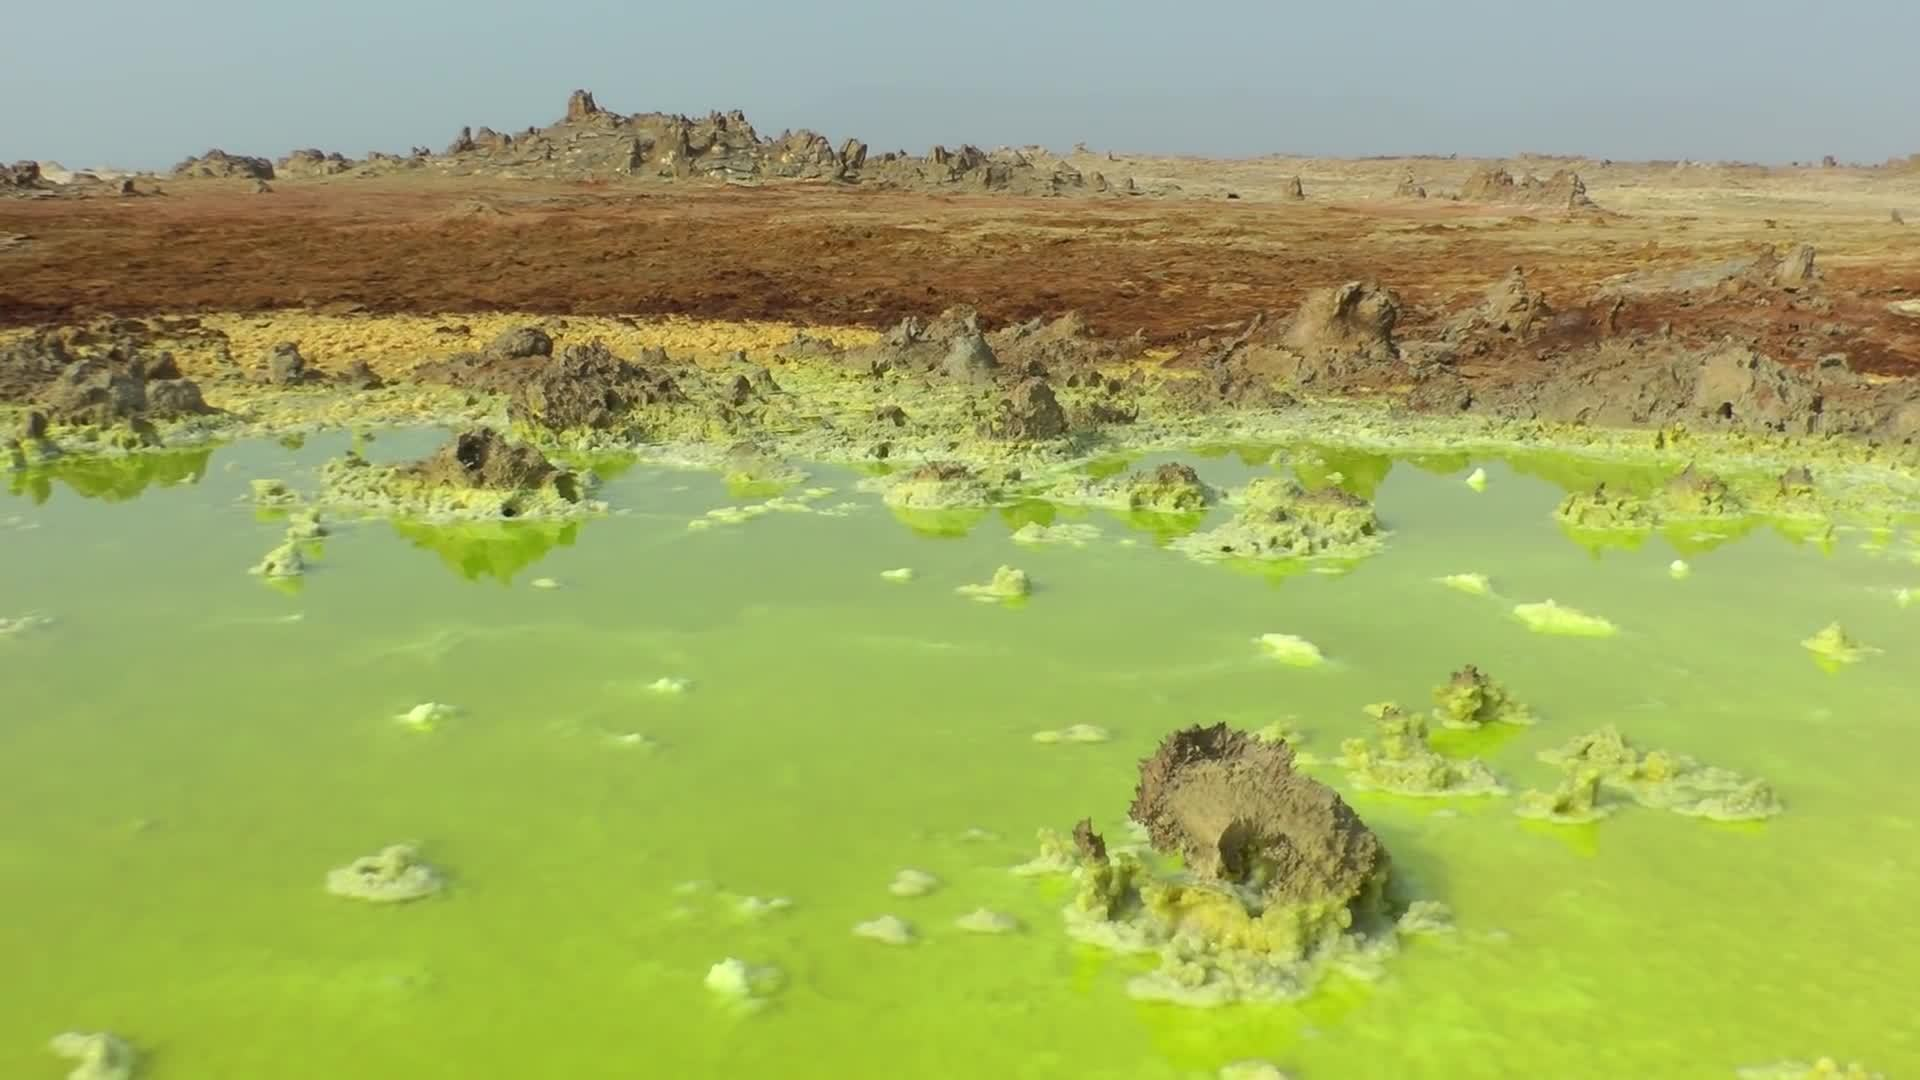 dallol, earthgifs, unearthly, The Unearthly Scenery of Dallol, Ethiopia in HD GIFs